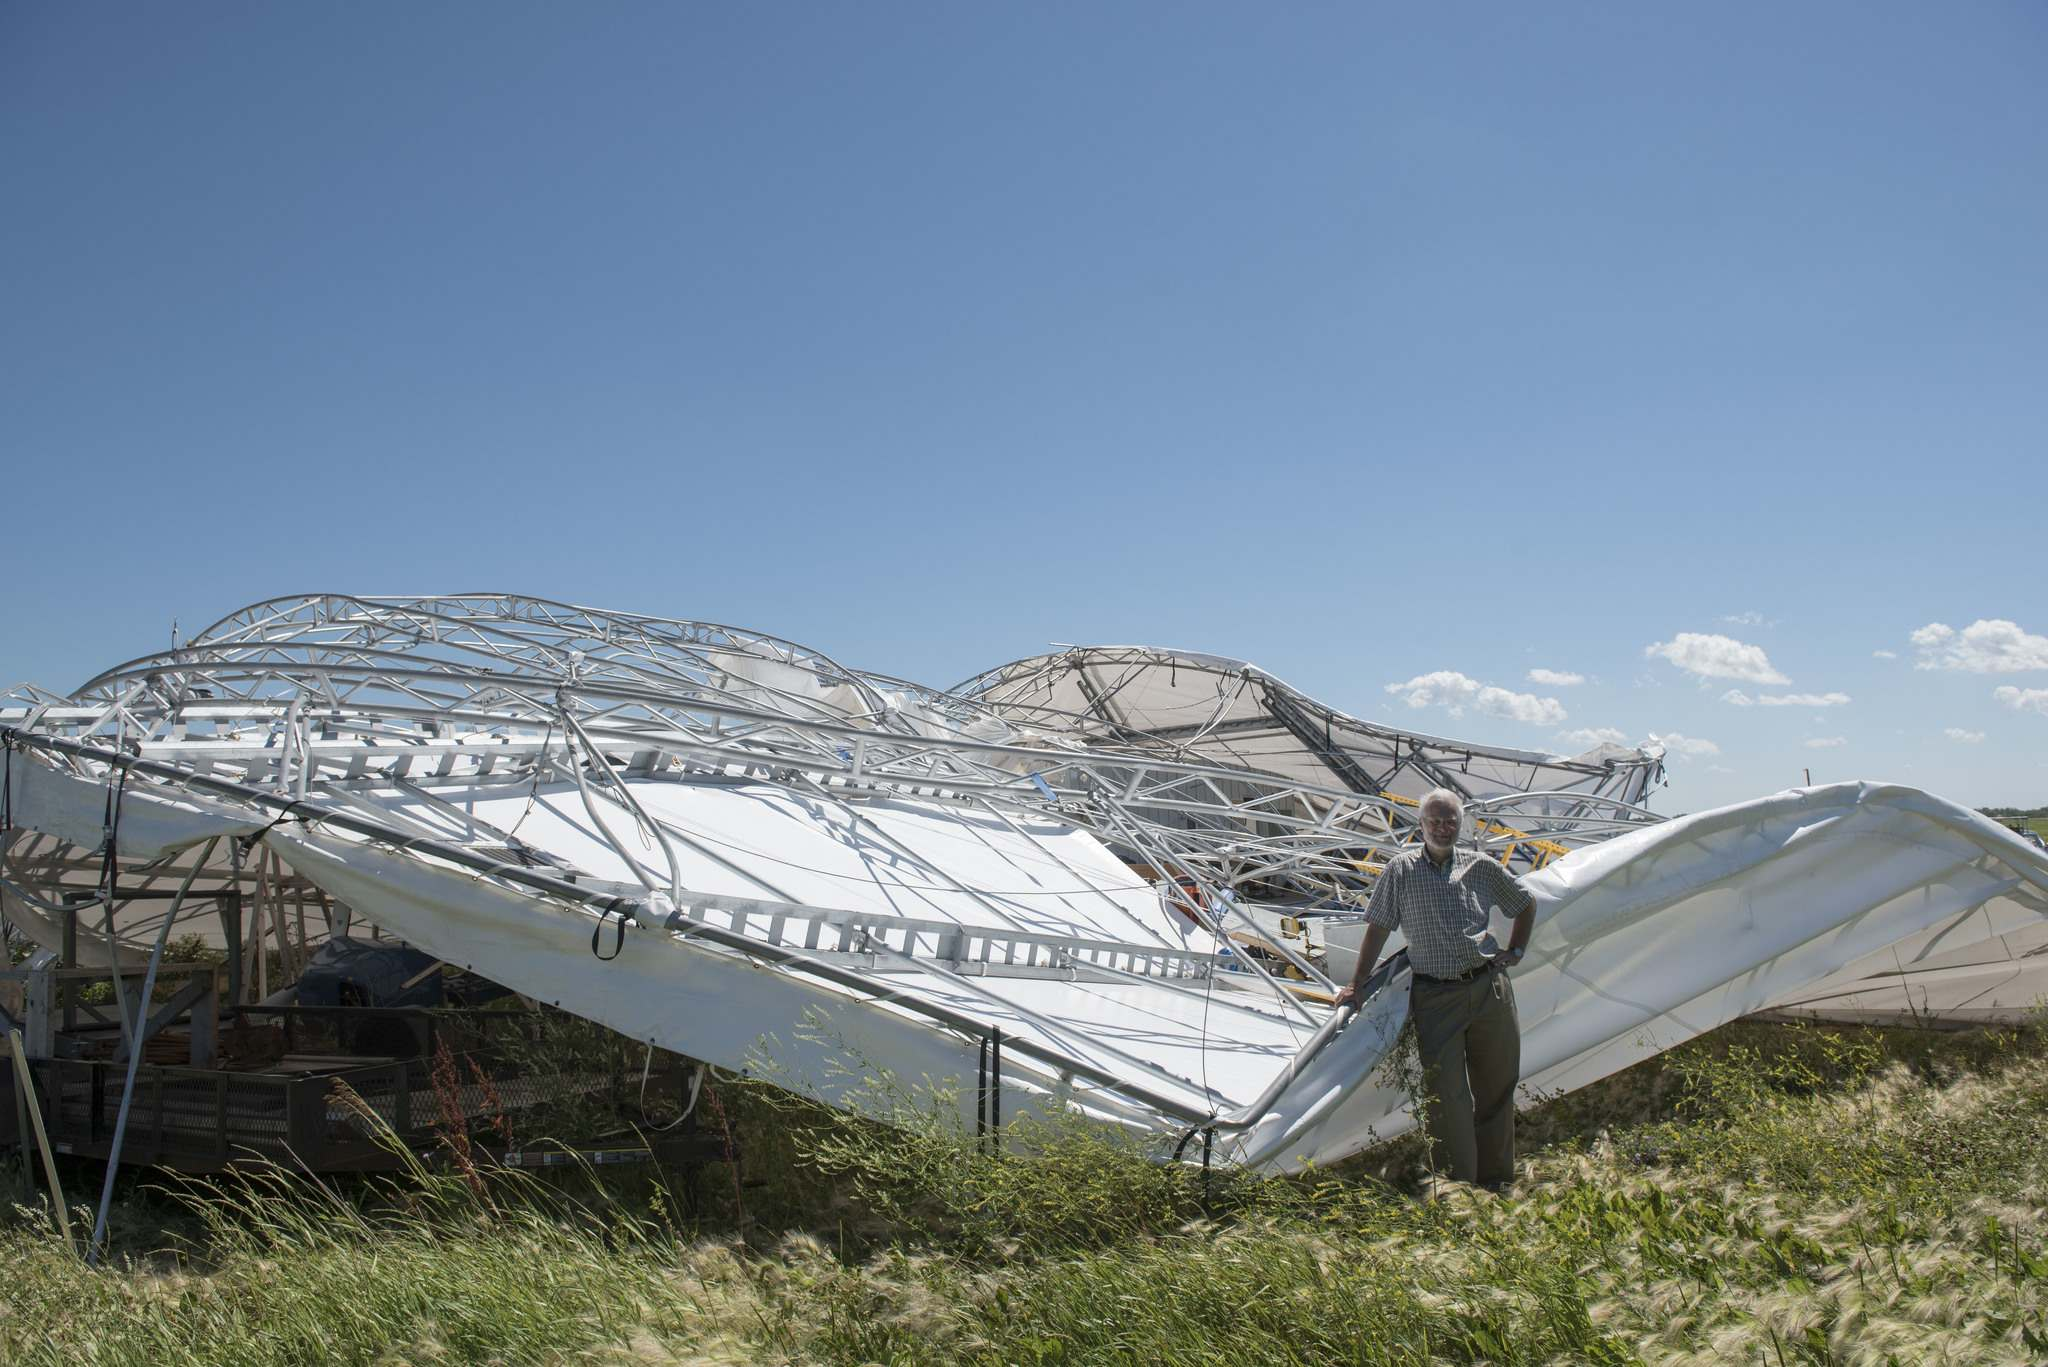 DAVID LIPNOWSKI / WINNIPEG FREE PRESS Files</p><p>Barry Prentice surveys damage caused by a windstorm at St. Andrews Airport in July 2016. Prentice's small hangar and research operation at the airport was wiped out by the storm.</p></p>